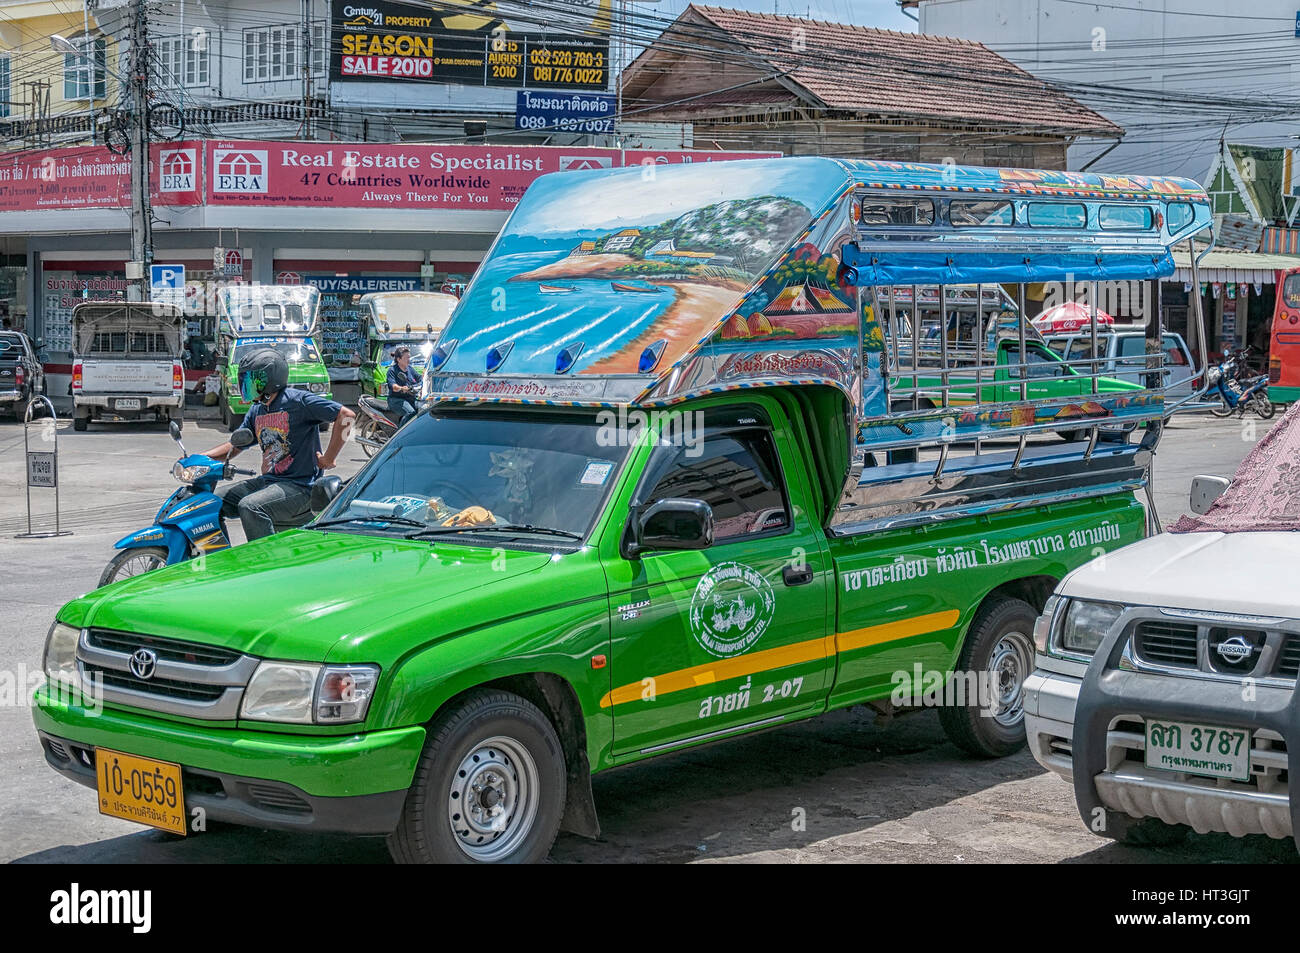 HUA HIN, THAILAND - SEPTEMBER 23, 2010: Songthaew pick-up truck in the center of Hua Hin. Songthaews are used as - Stock Image